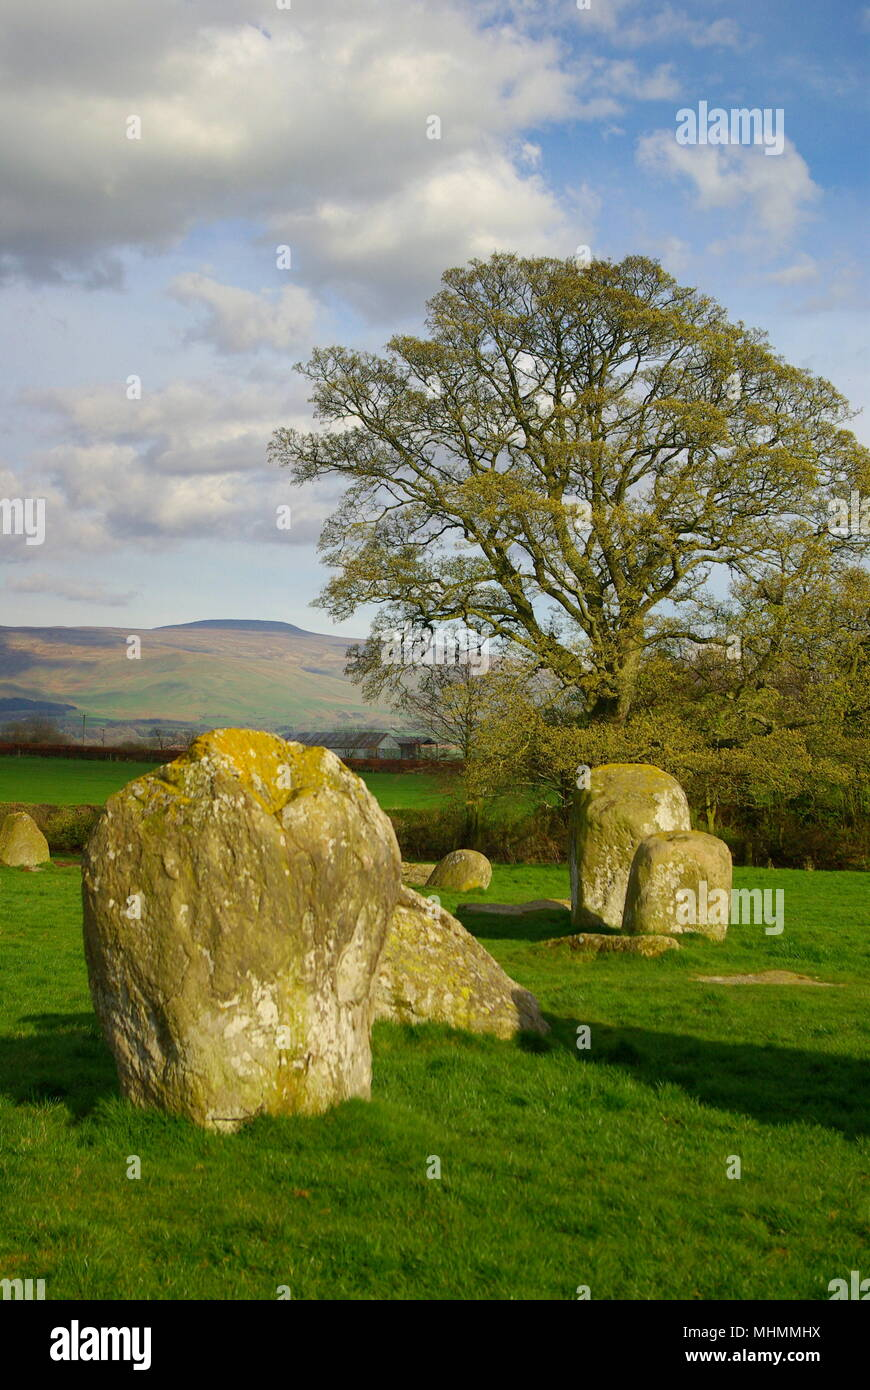 """Long Meg and Her Daughters, near Penrith and Little Salkeld, Cumbria.  This is the third largest stone circle in England, composed of an oval ring measuring 300 by 360 feet, and several large outlying stones, the largest and tallest of these being Long Meg, the """"mother stone"""" (not visible in this picture).       Date: April 2009 - Stock Image"""